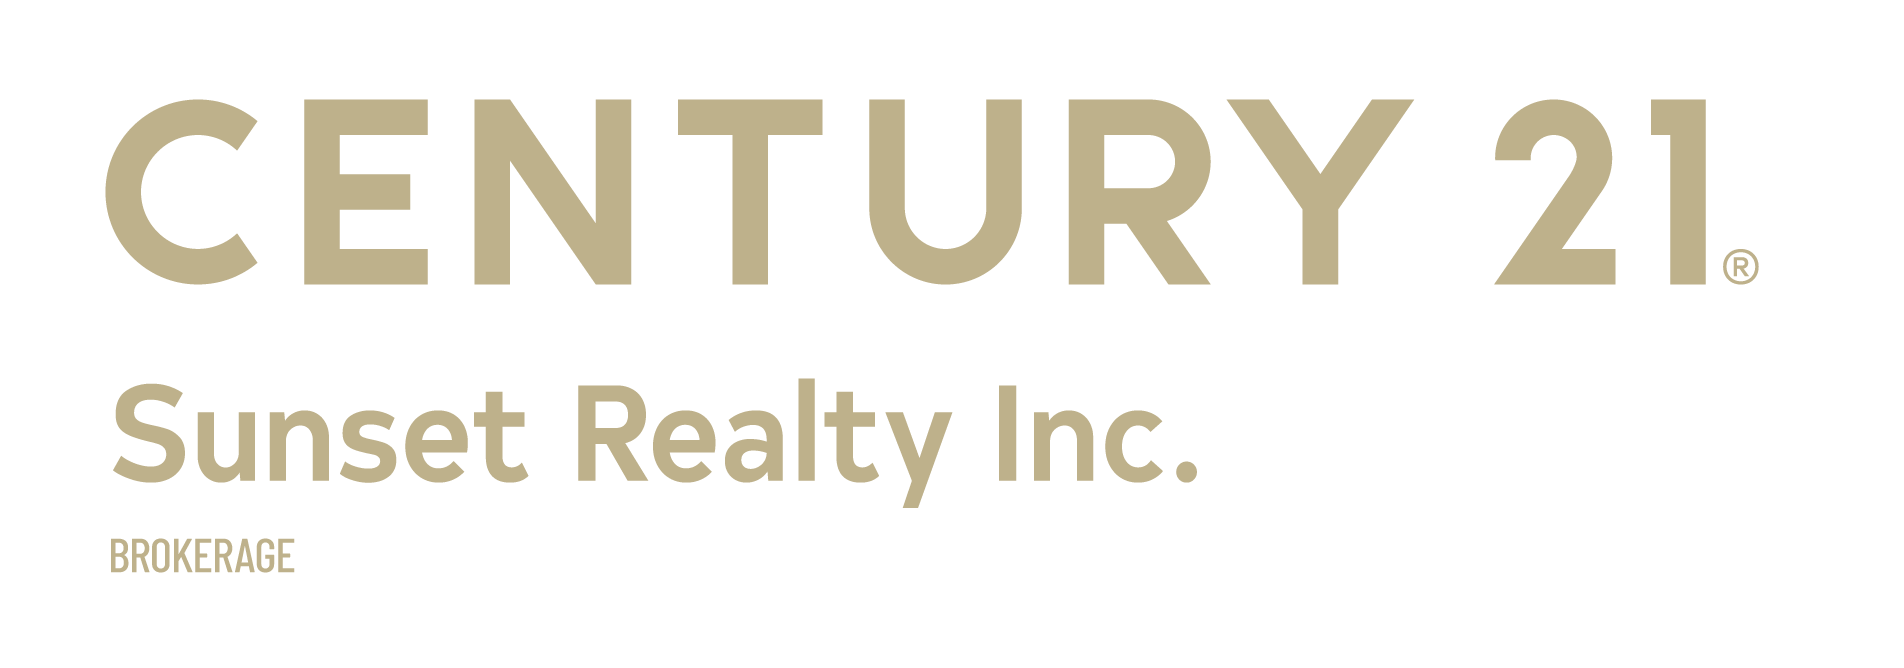 Century 21 Sunset Realty Inc. logo